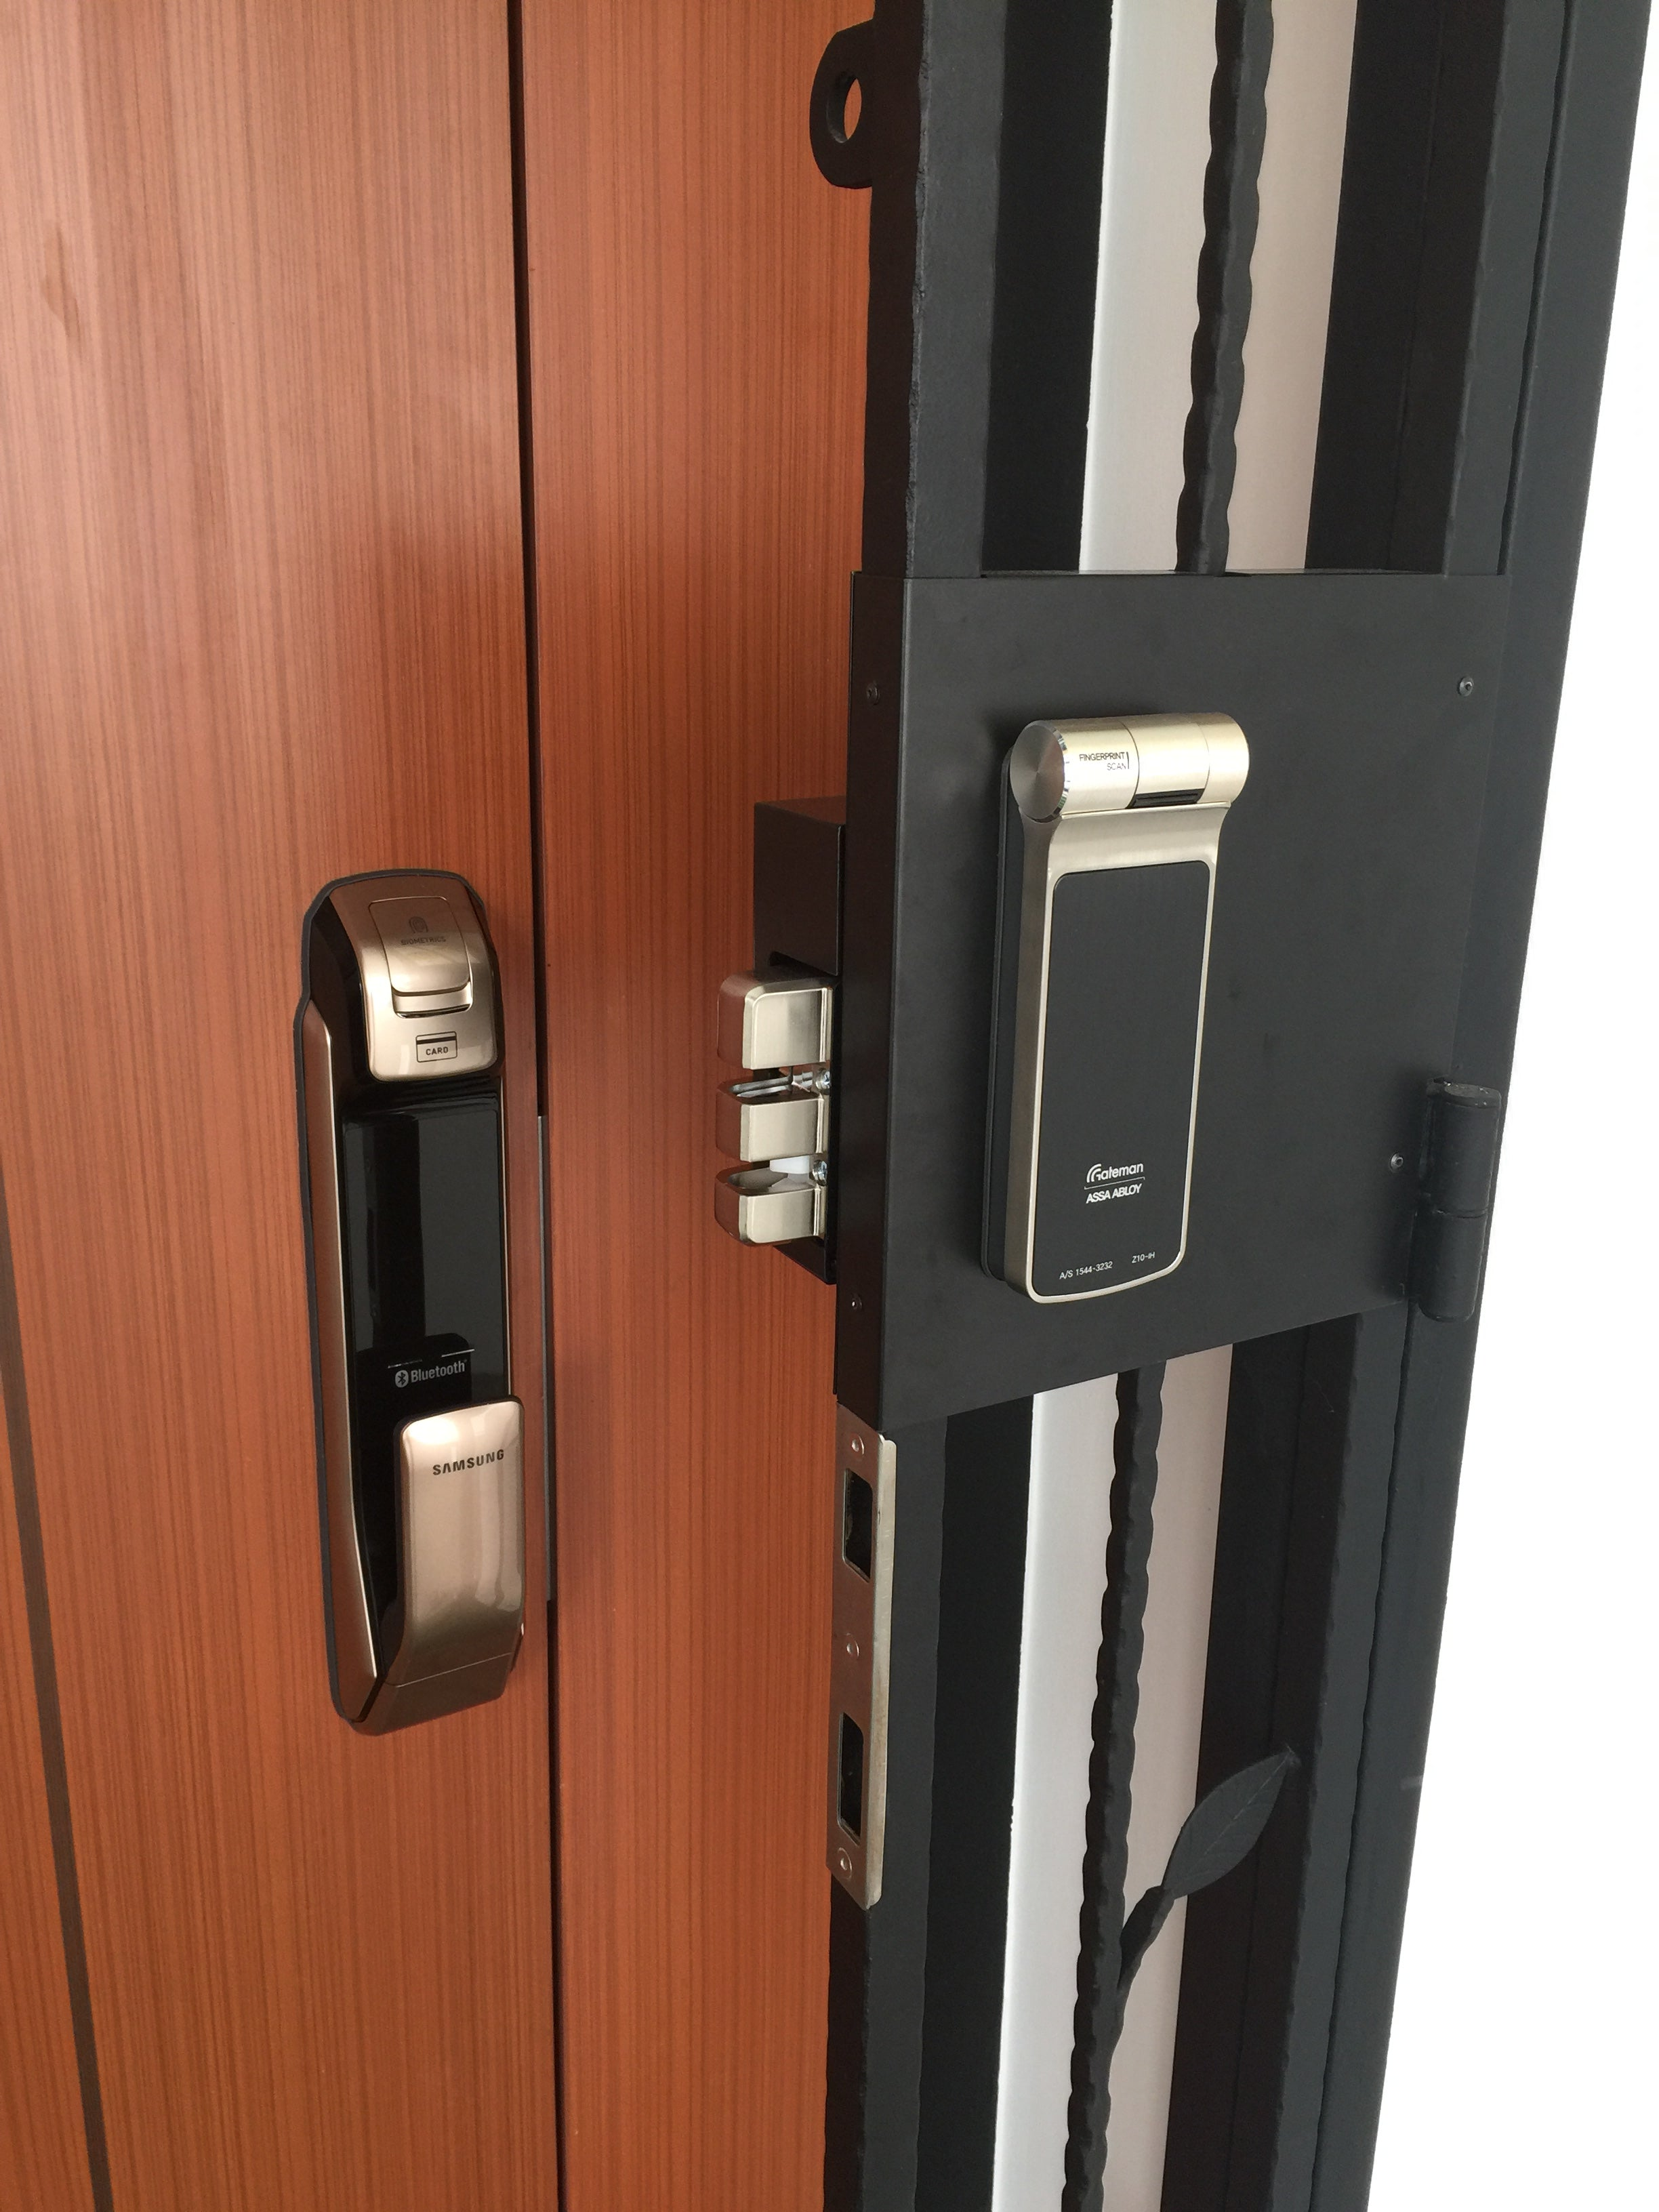 Gateman Digital Lock Z10g An Digital Lock Pte Ltd